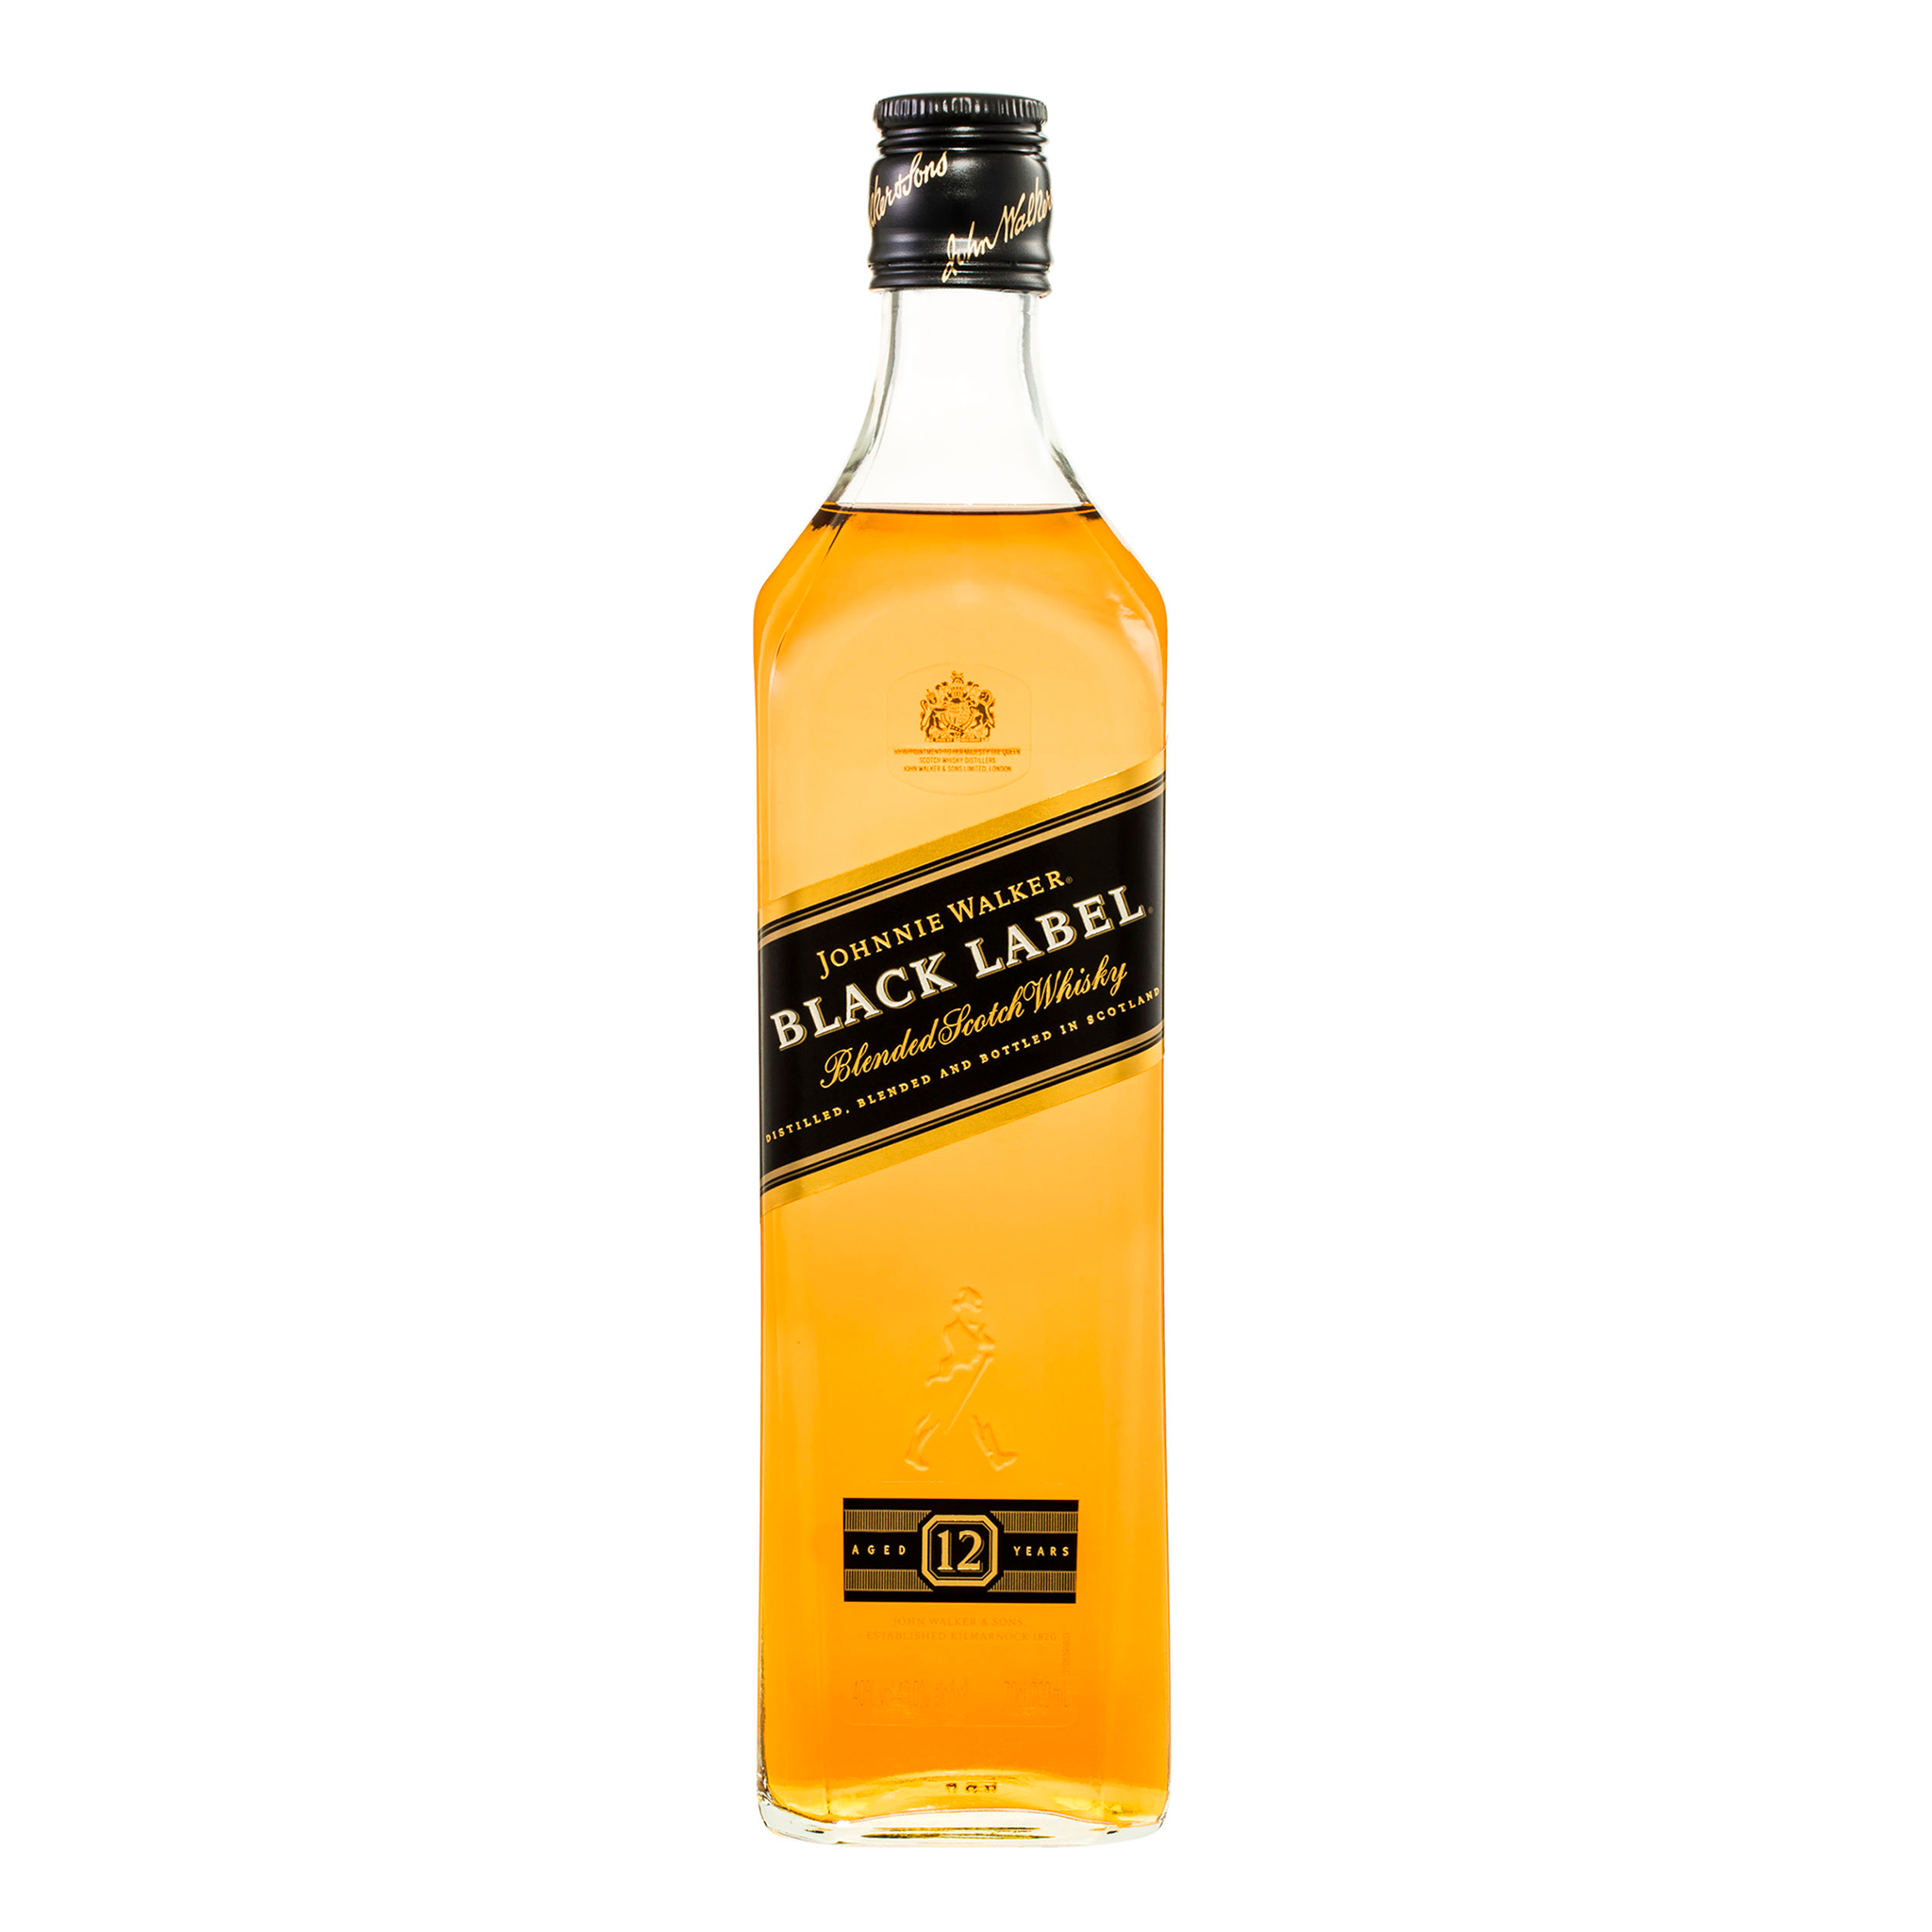 Johnnie Walker Black Label Blended Scotch Whisky 700ml - Kent Street Cellars